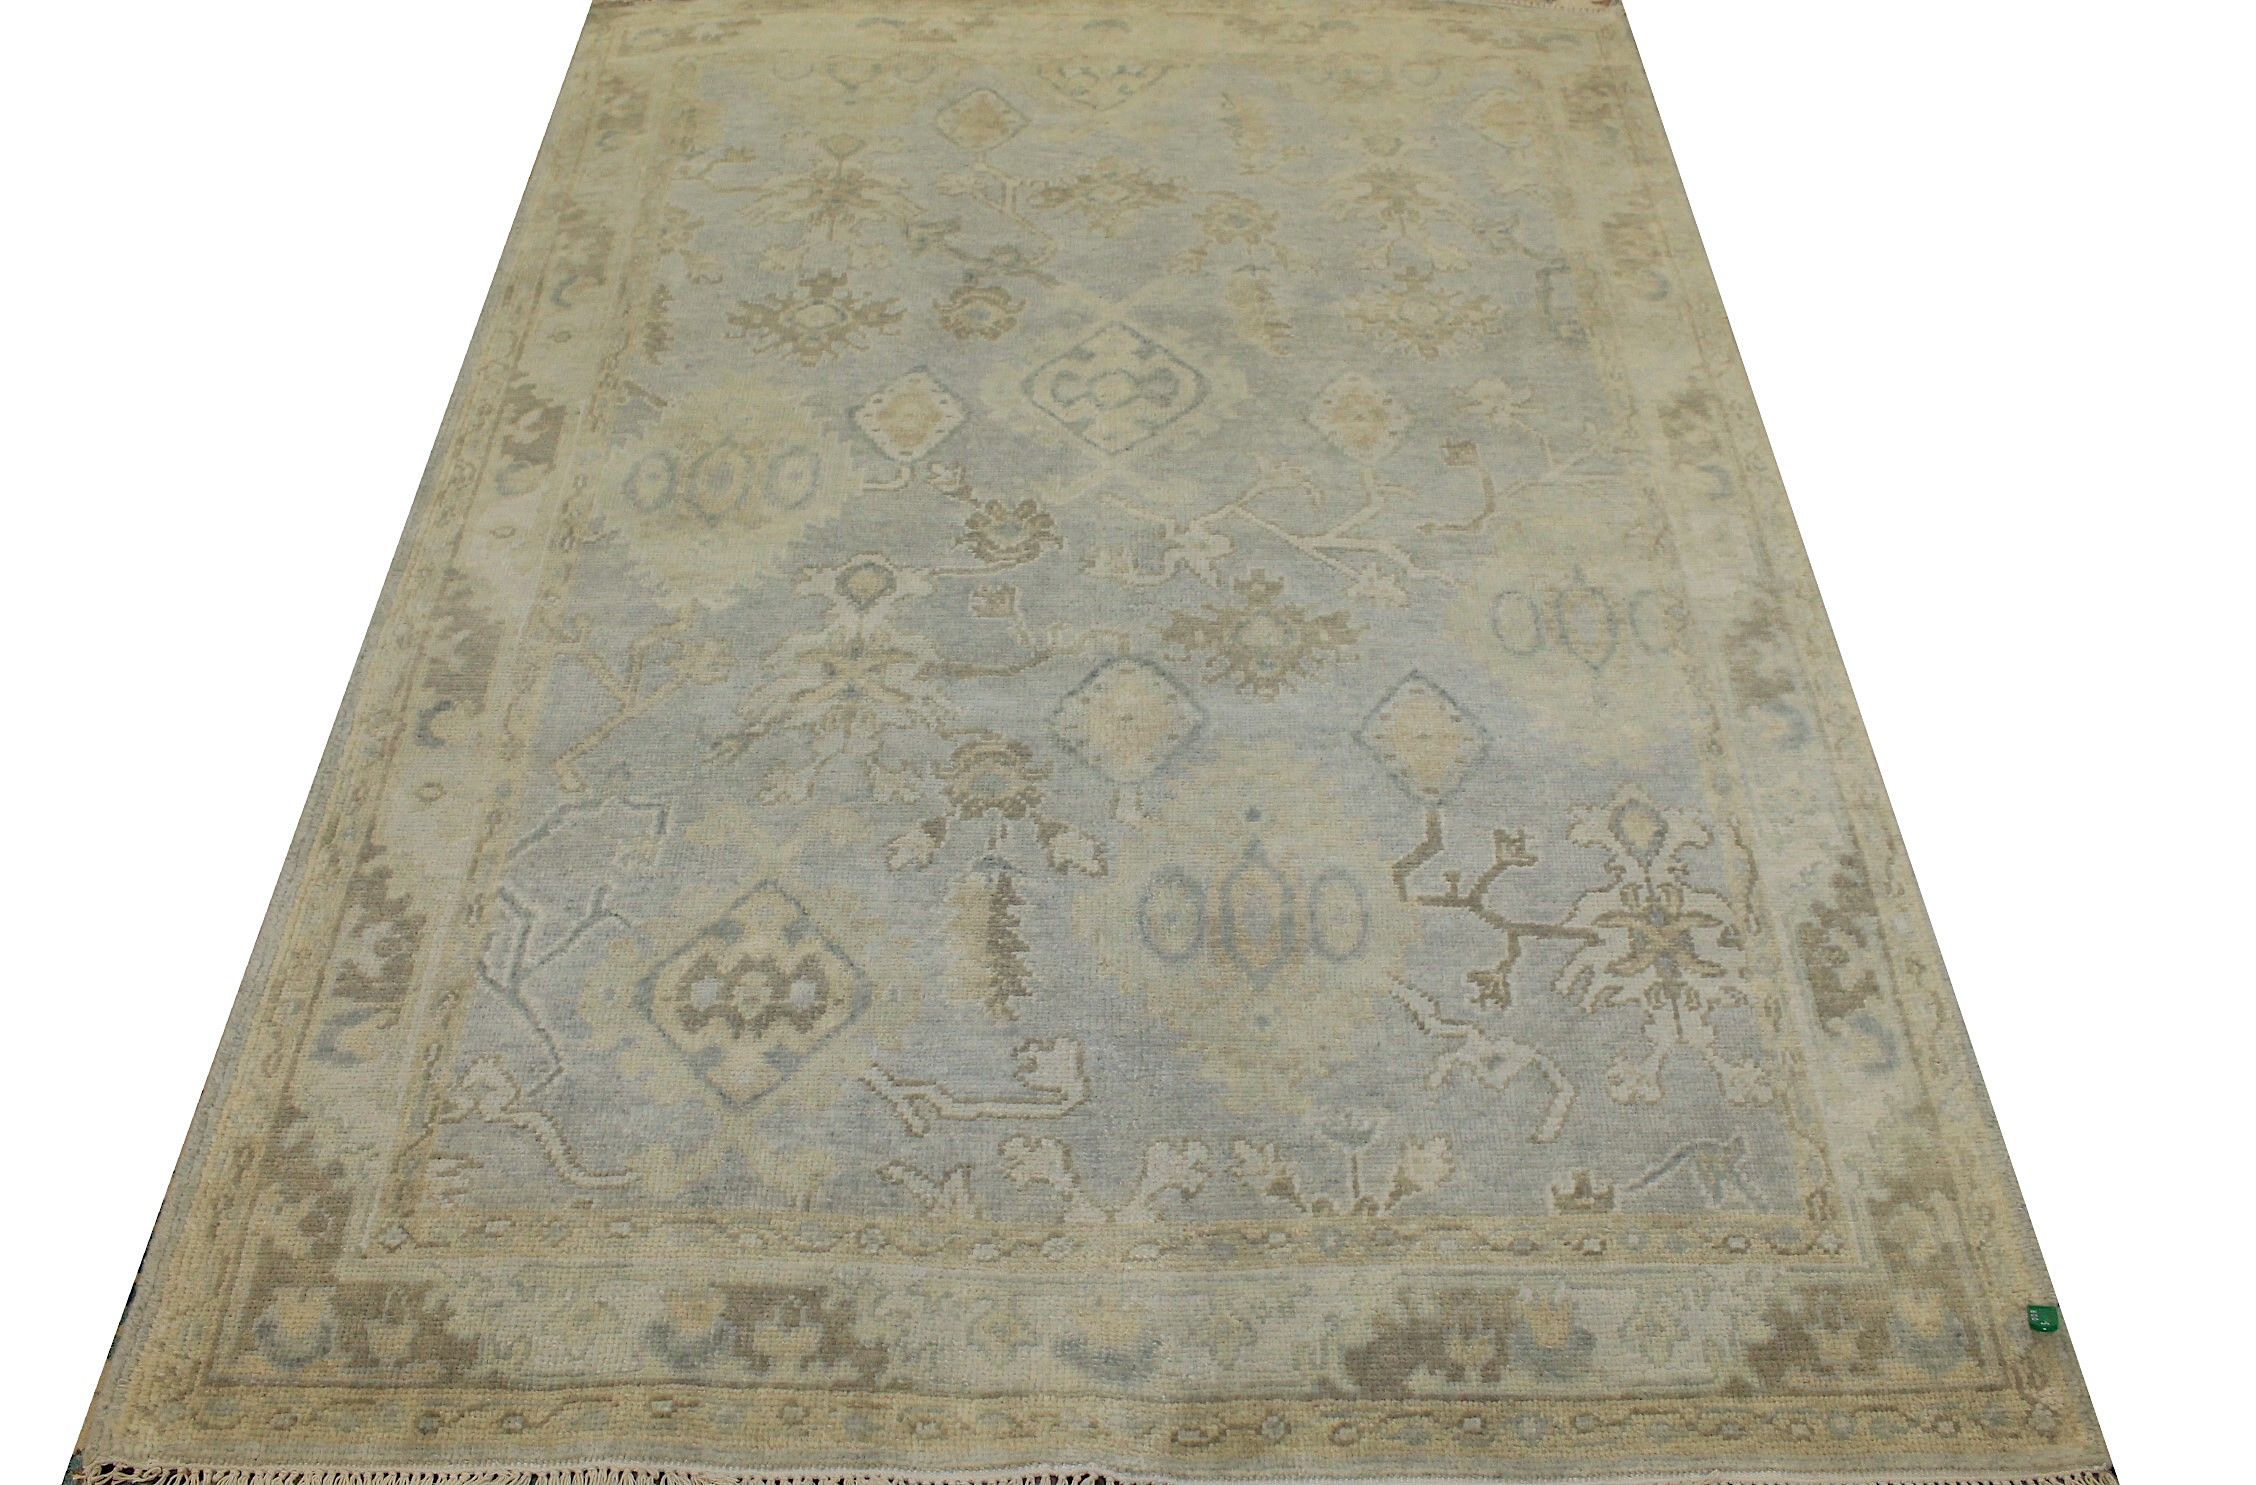 5x7/8 Oushak Hand Knotted Wool Area Rug - MR025574